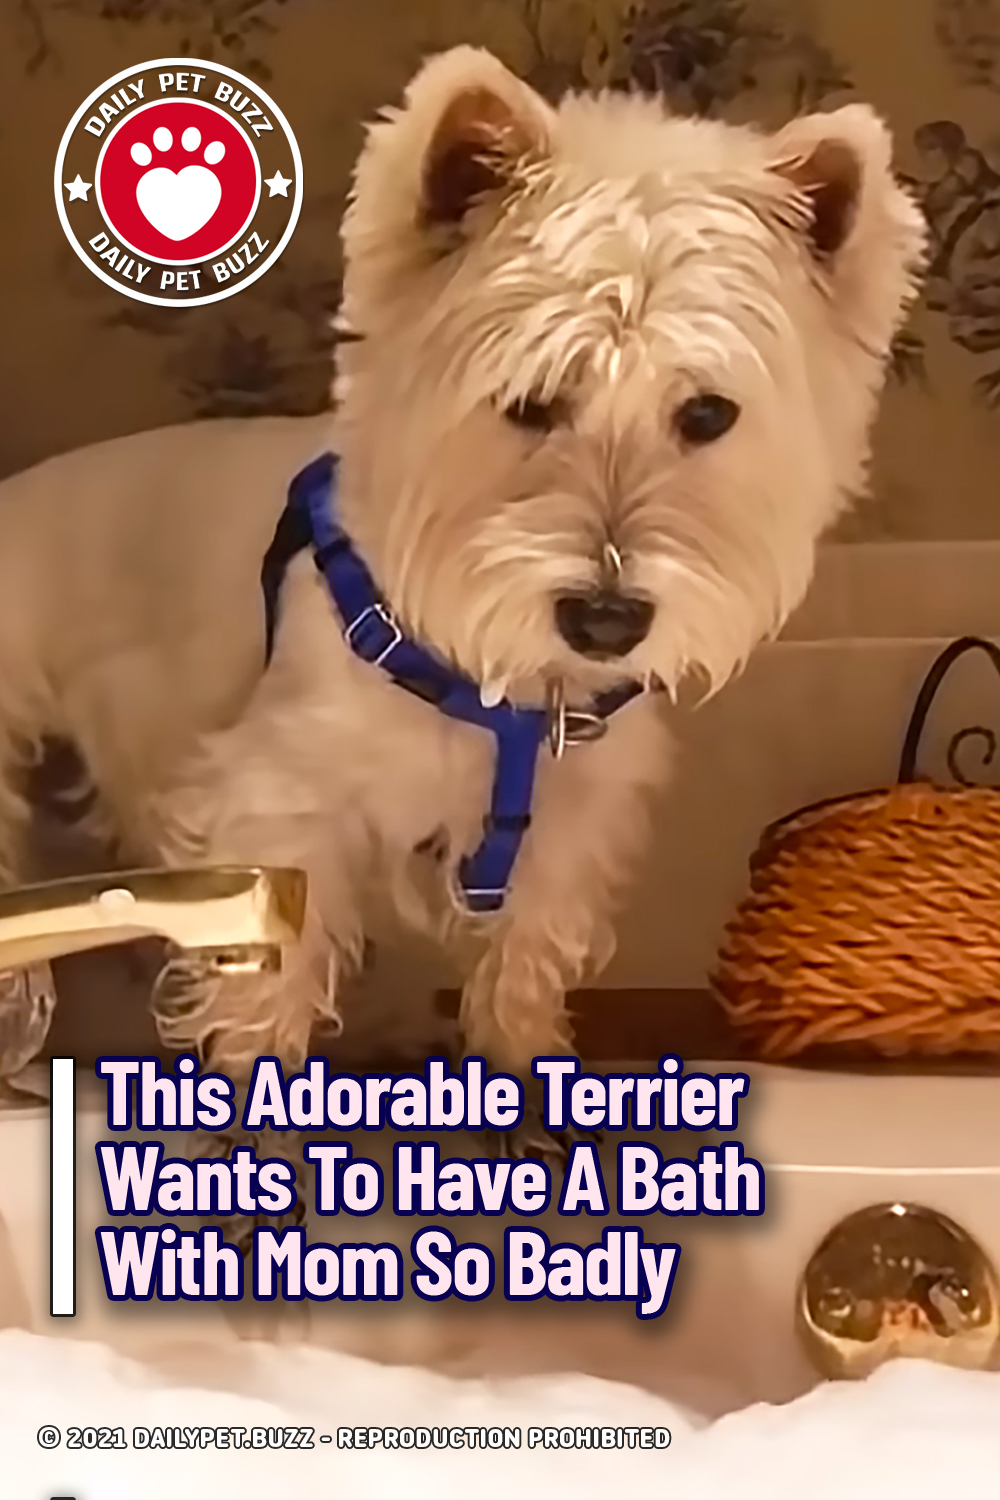 This Adorable Terrier Wants To Have A Bath With Mom So Badly